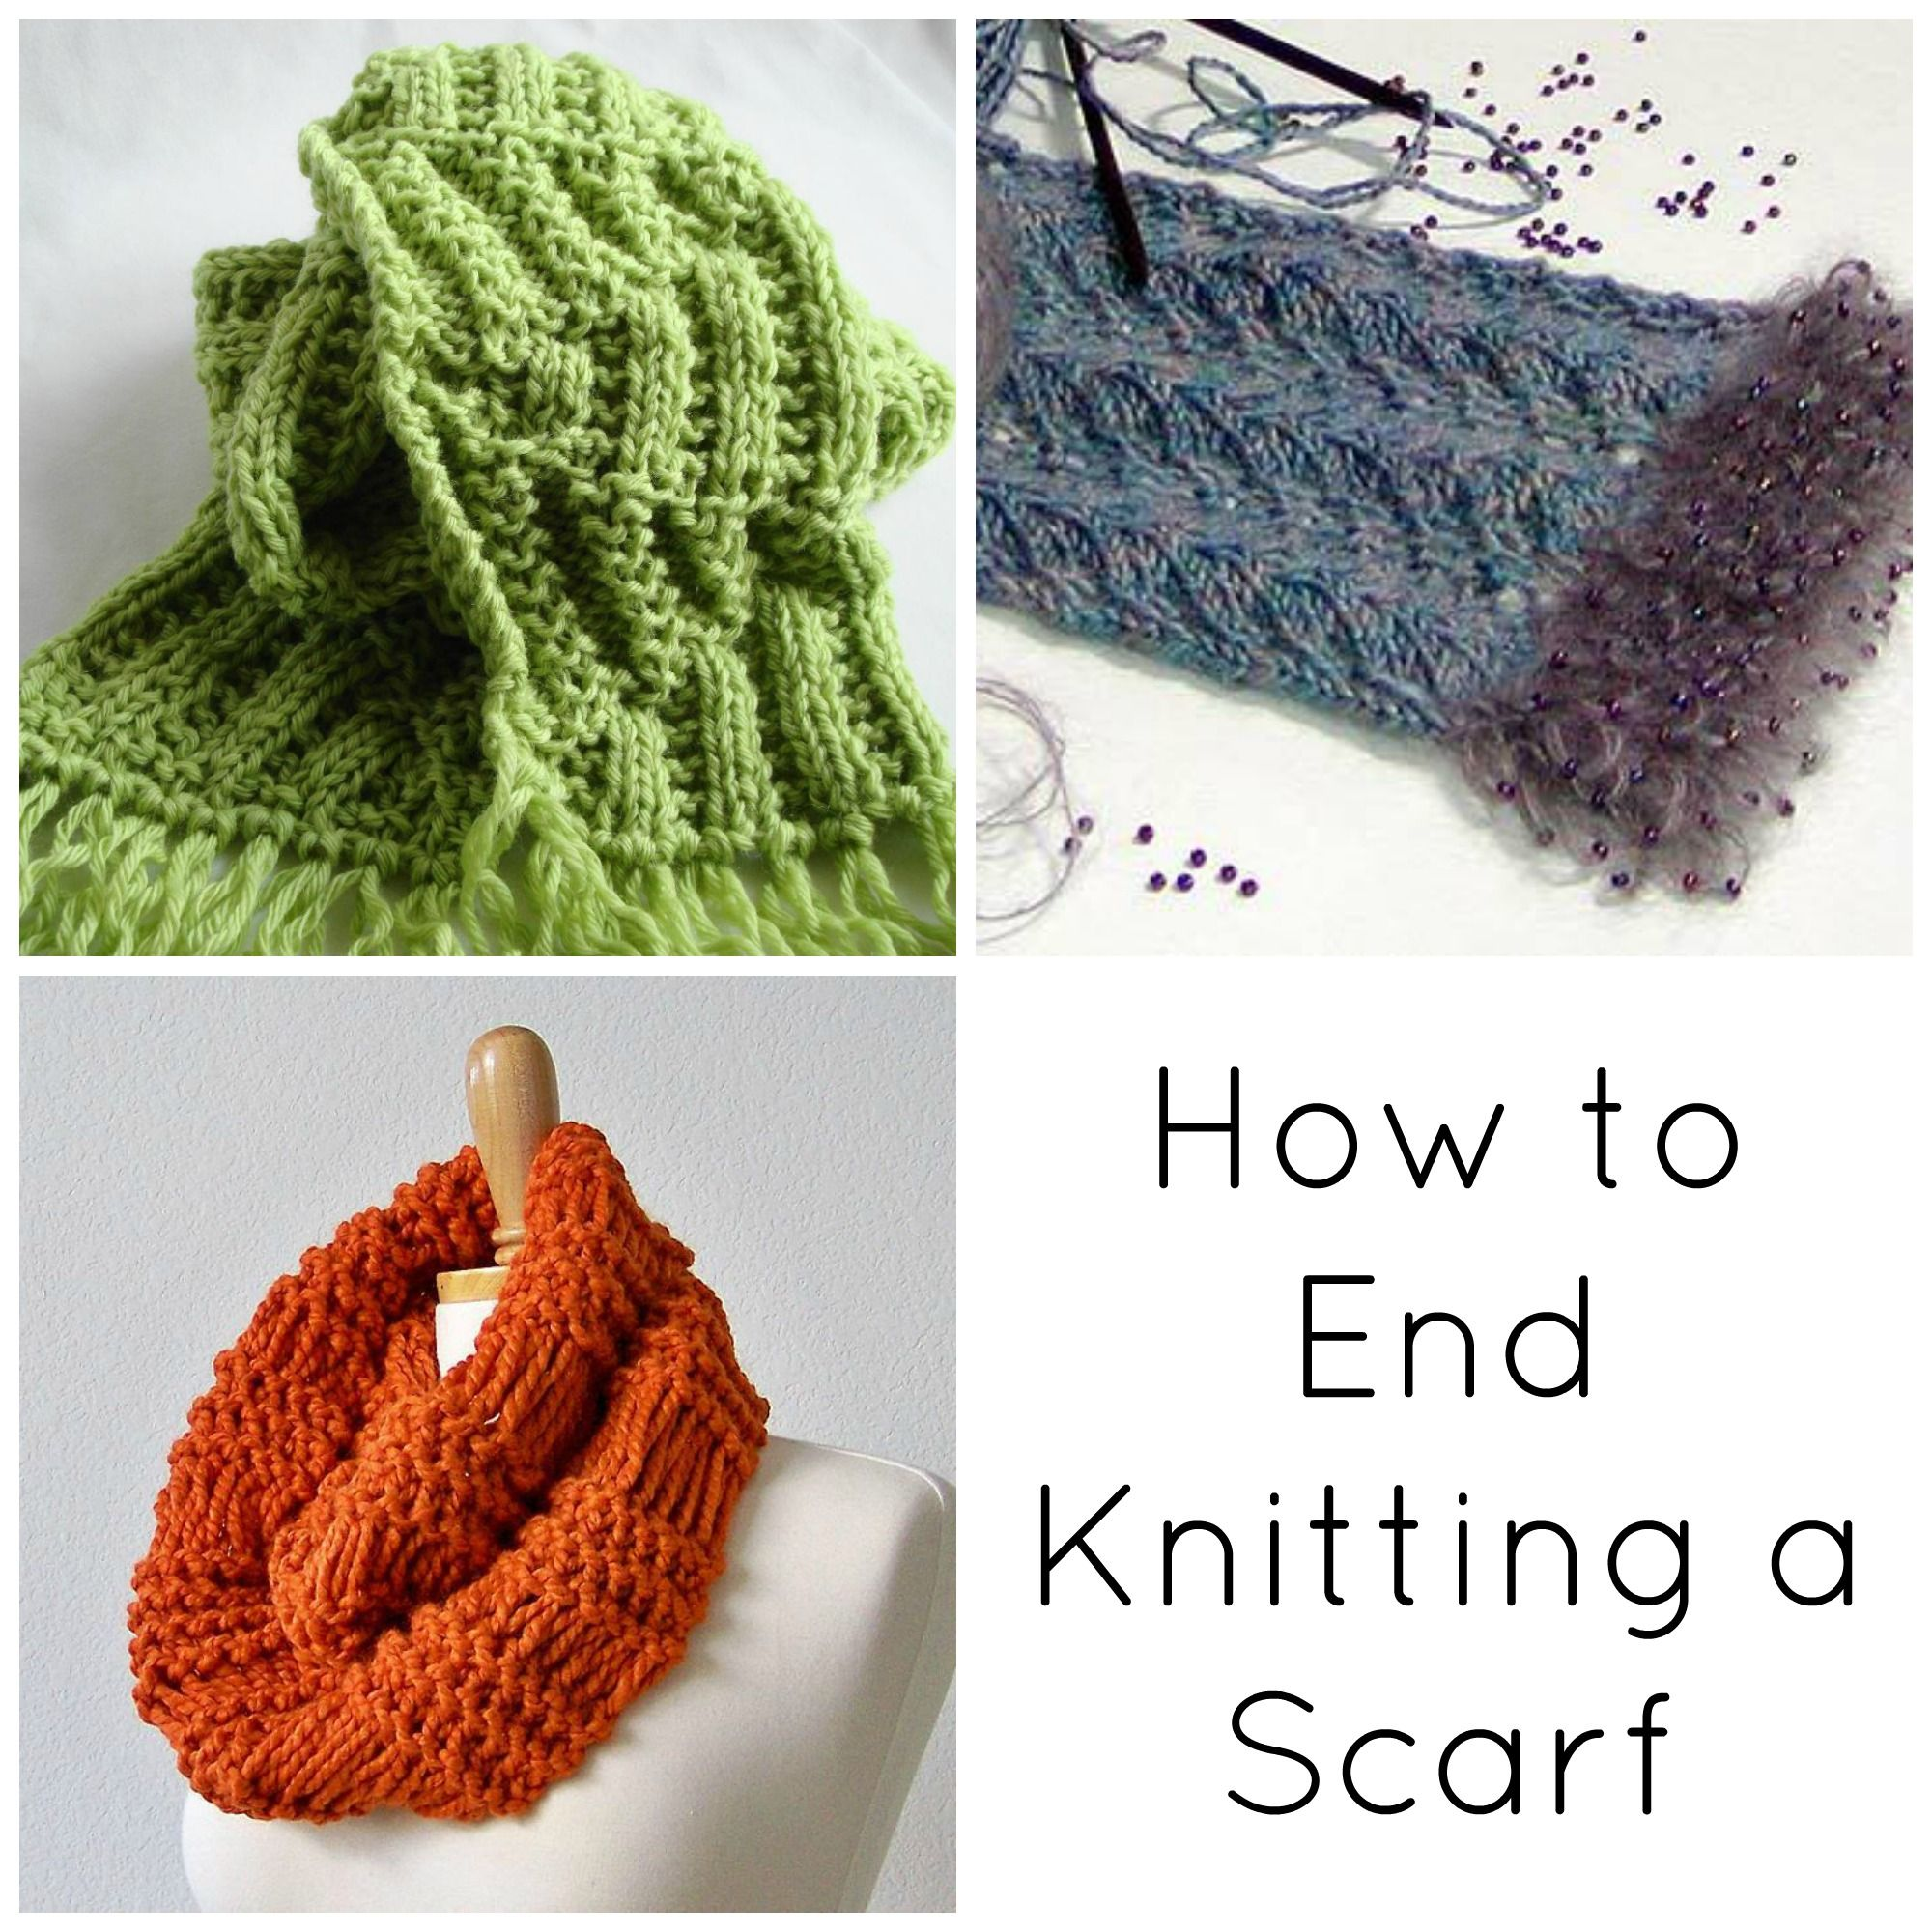 You've Reached The End Of Your First Scarf, But You Can't